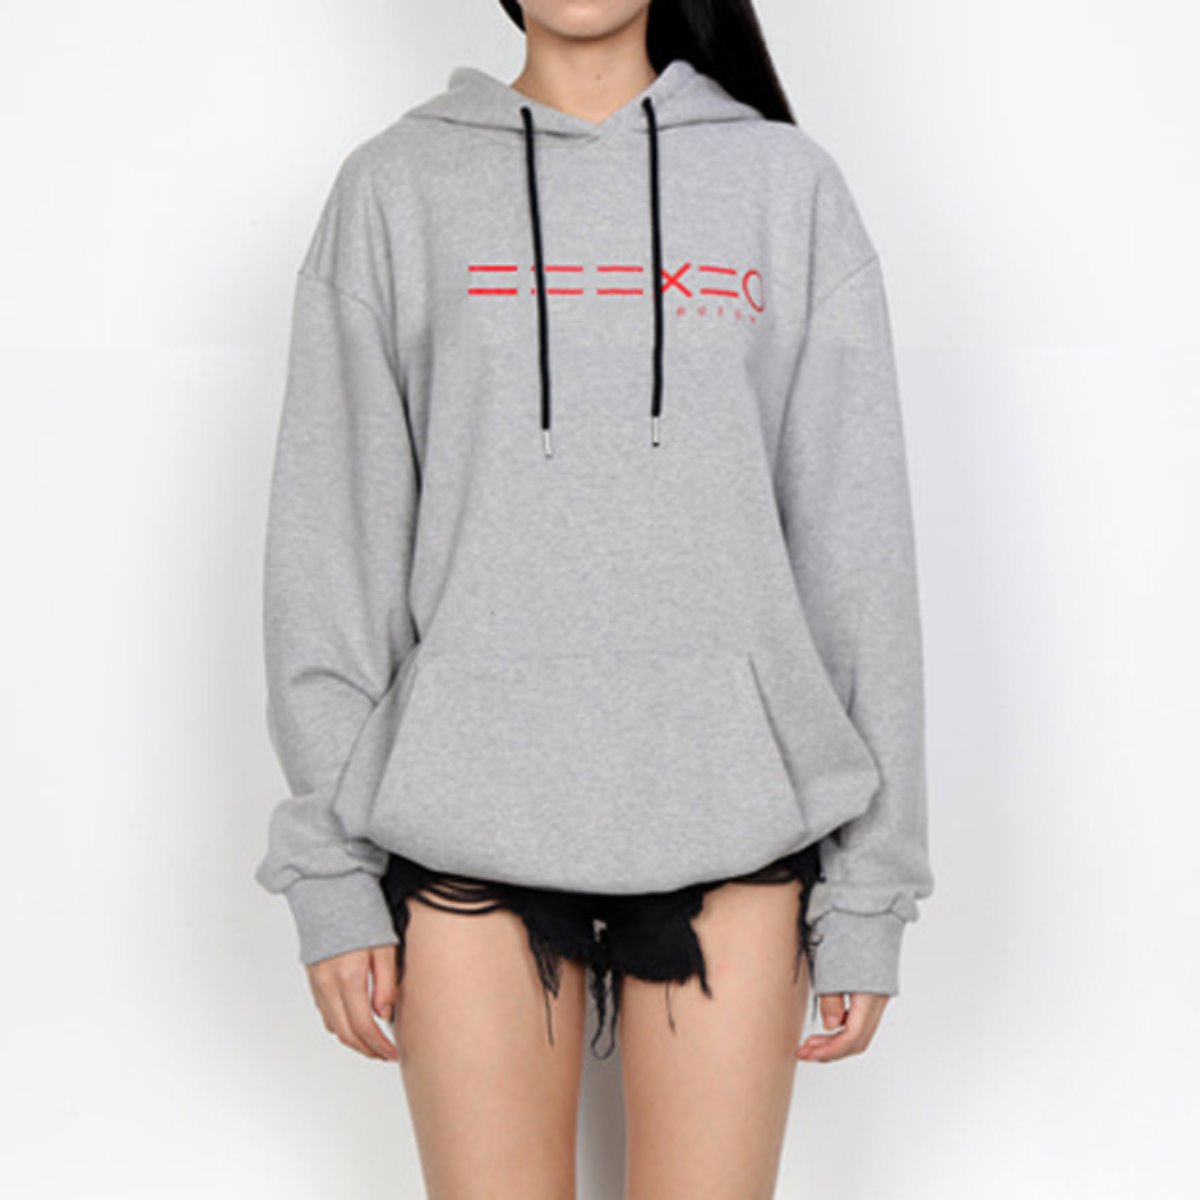 RED 3 EQUAL LINE & LOGO HOODIE SWEATSHIRTS(GREY)